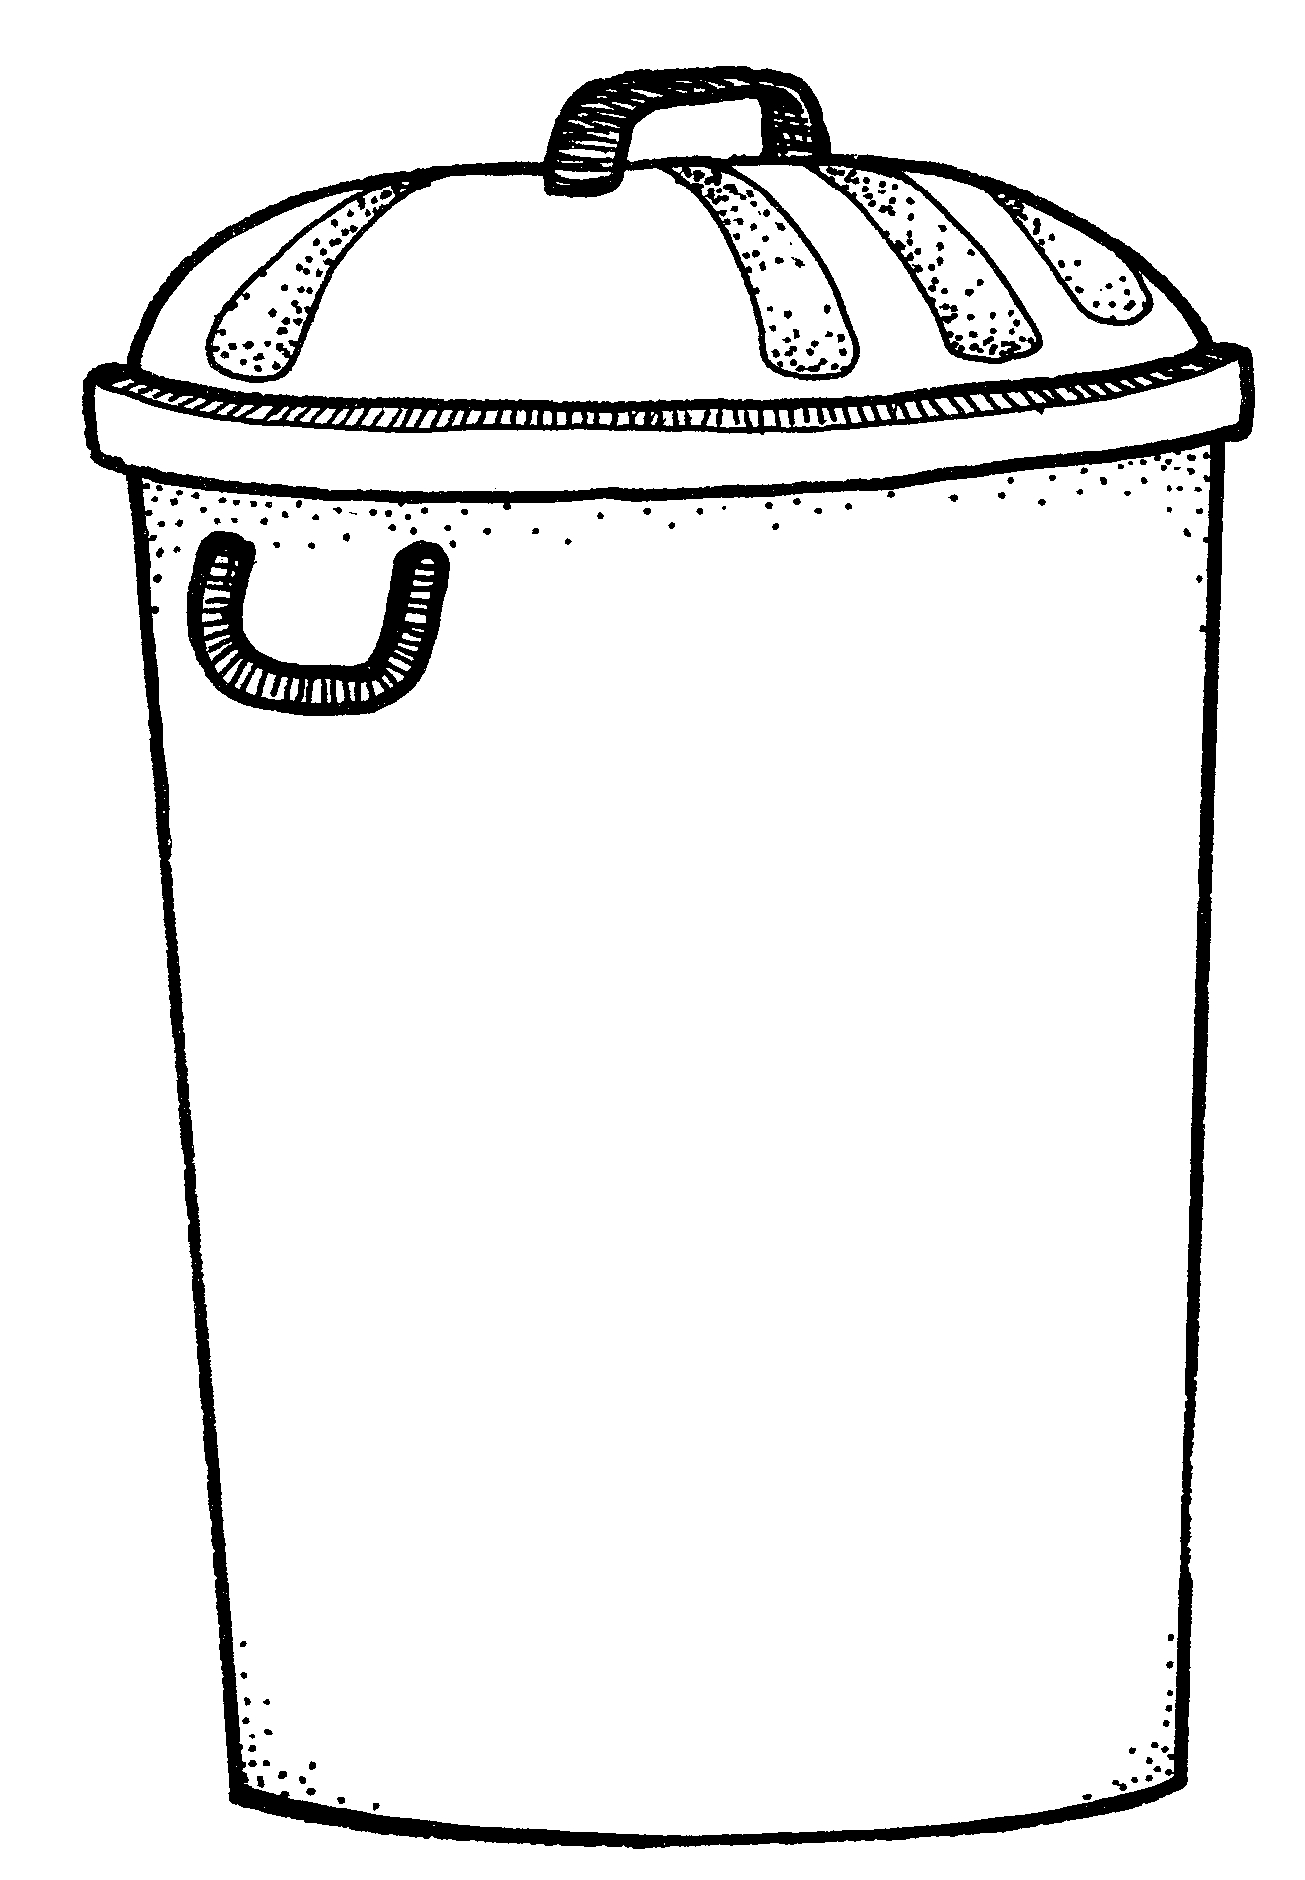 Pile of cans clipart black and white clip library download Free Garbage Can Clipart Black And White, Download Free Clip ... clip library download